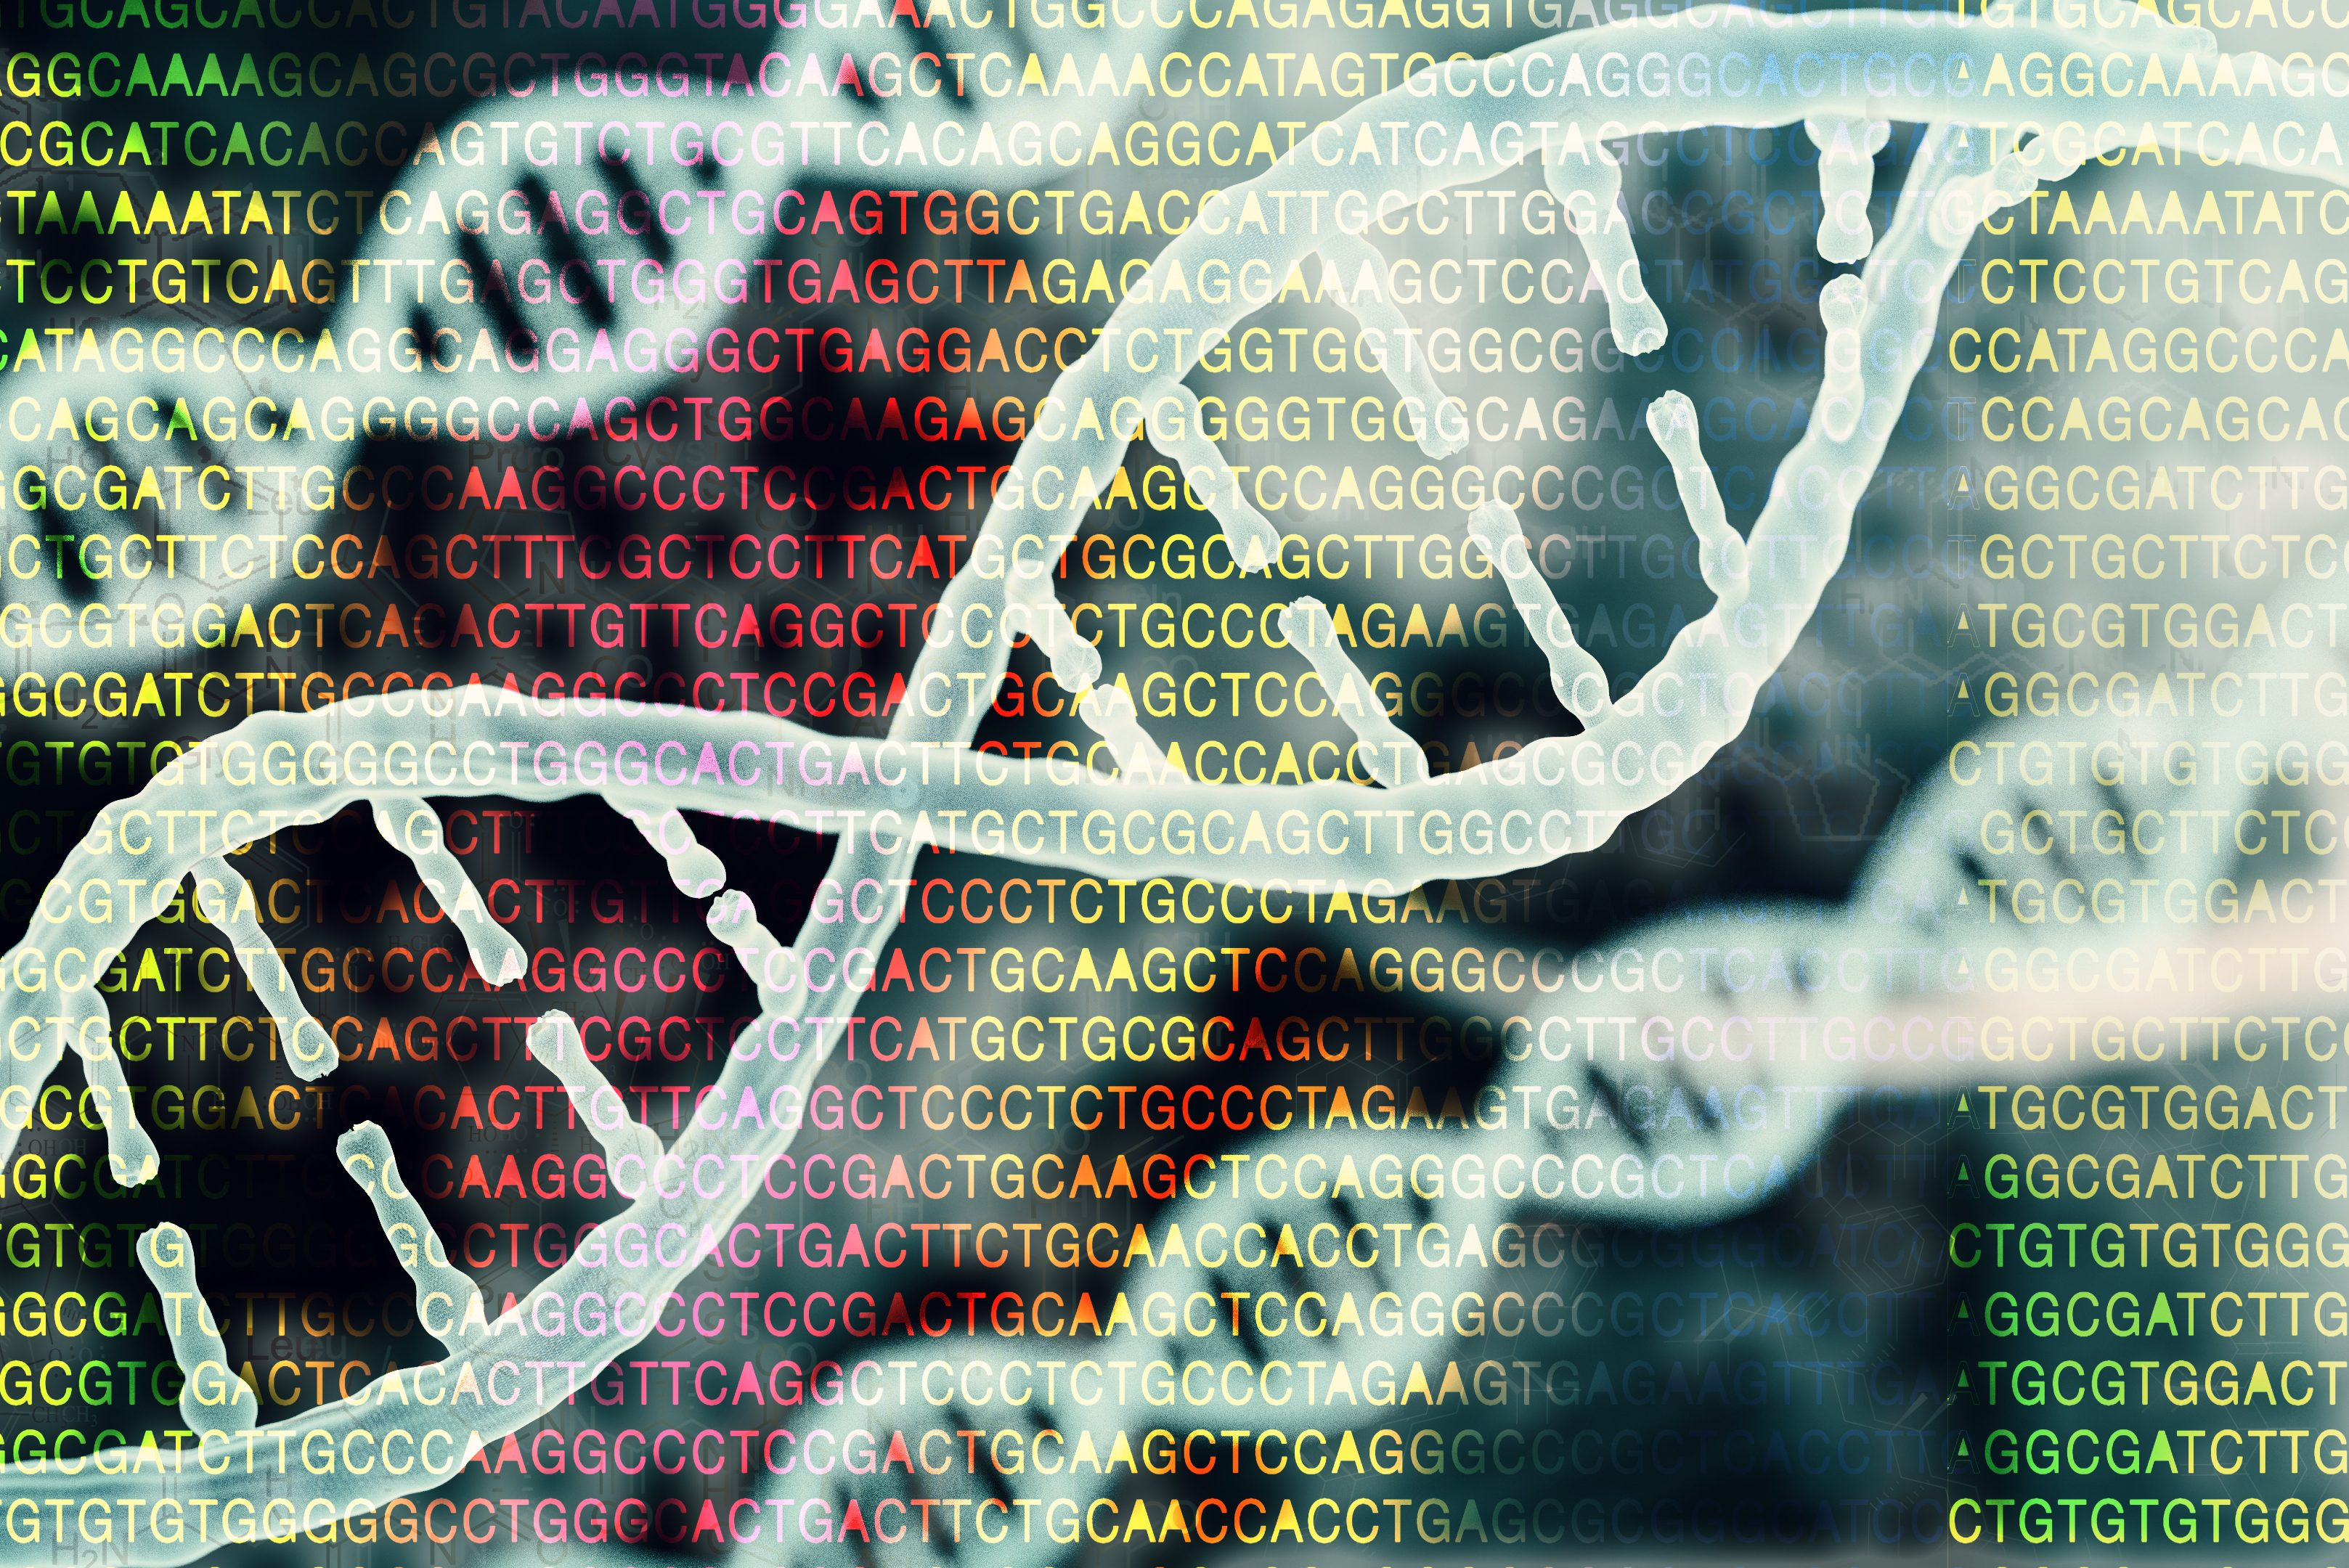 Biotechnology/bioinformatics concept showing DNA and protein letter background. (Getty Images)